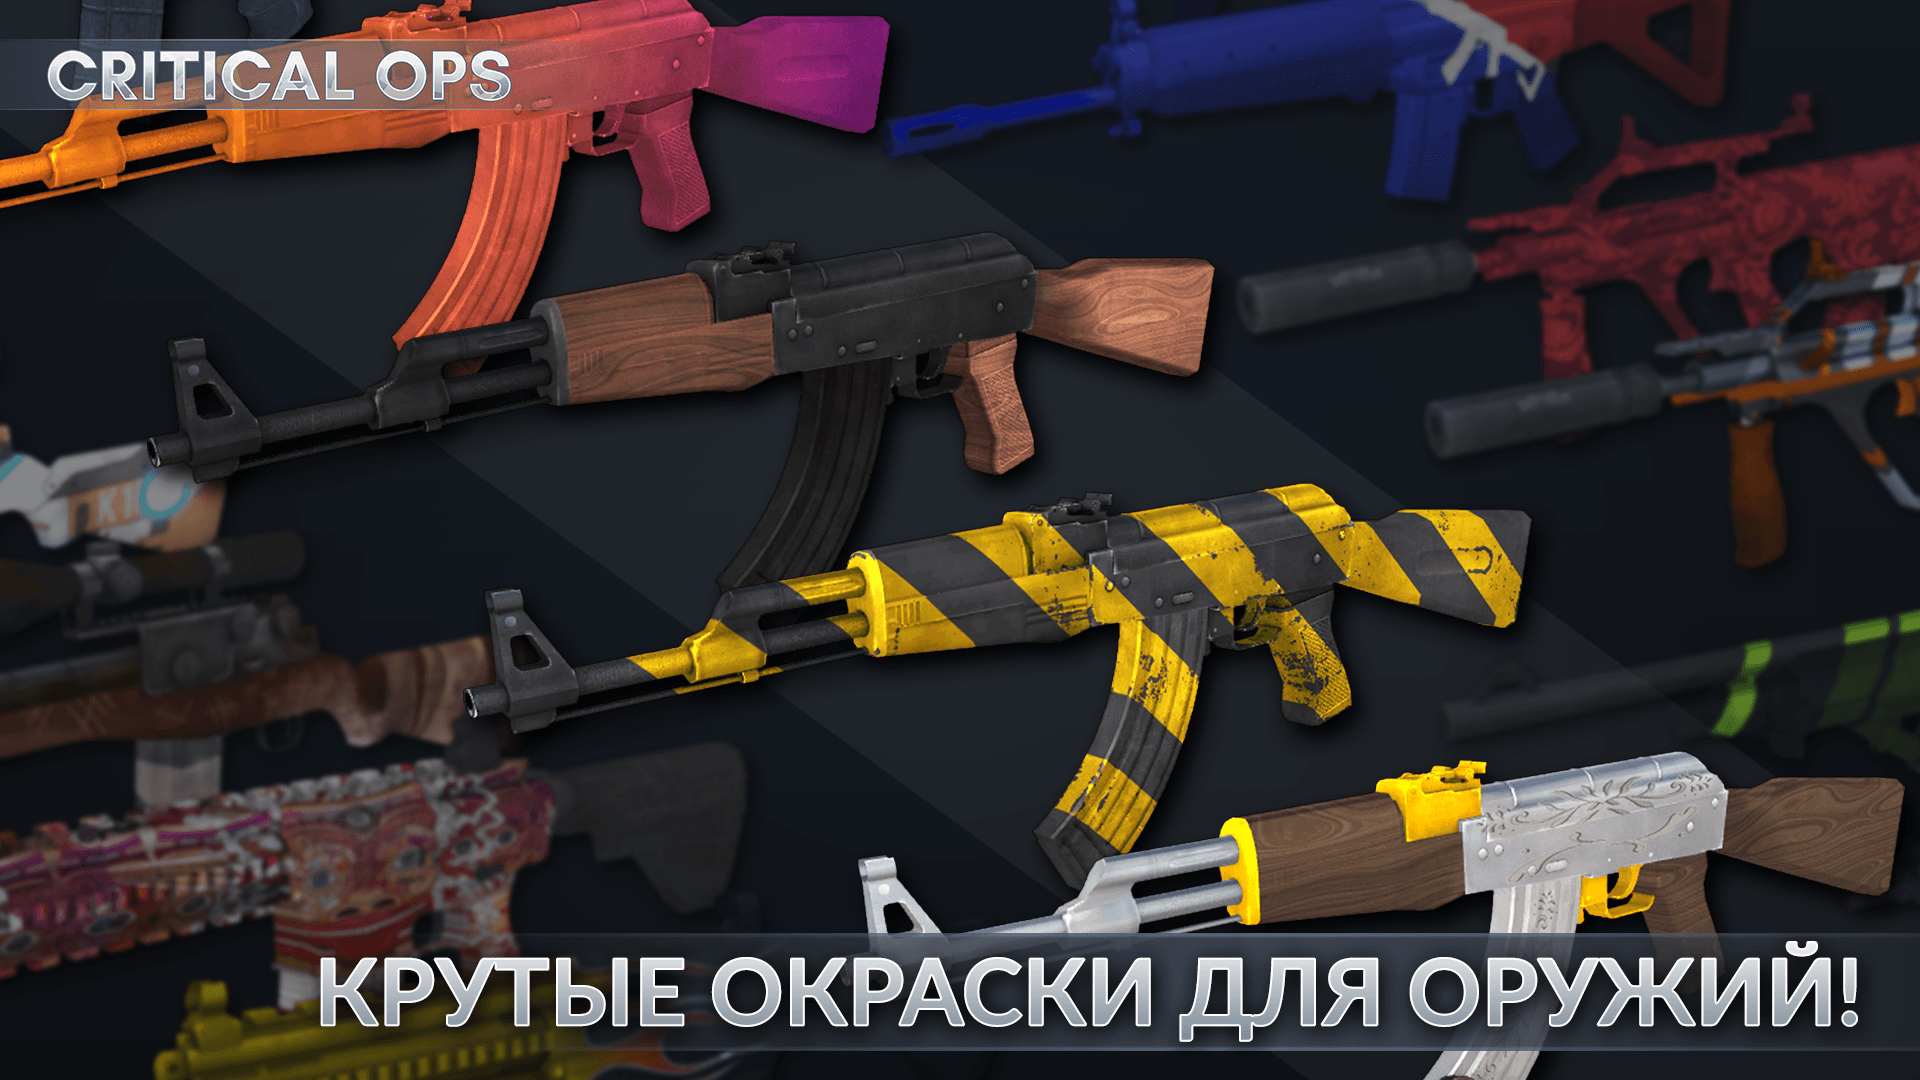 Critical Ops 1.0.0.f312 для Android